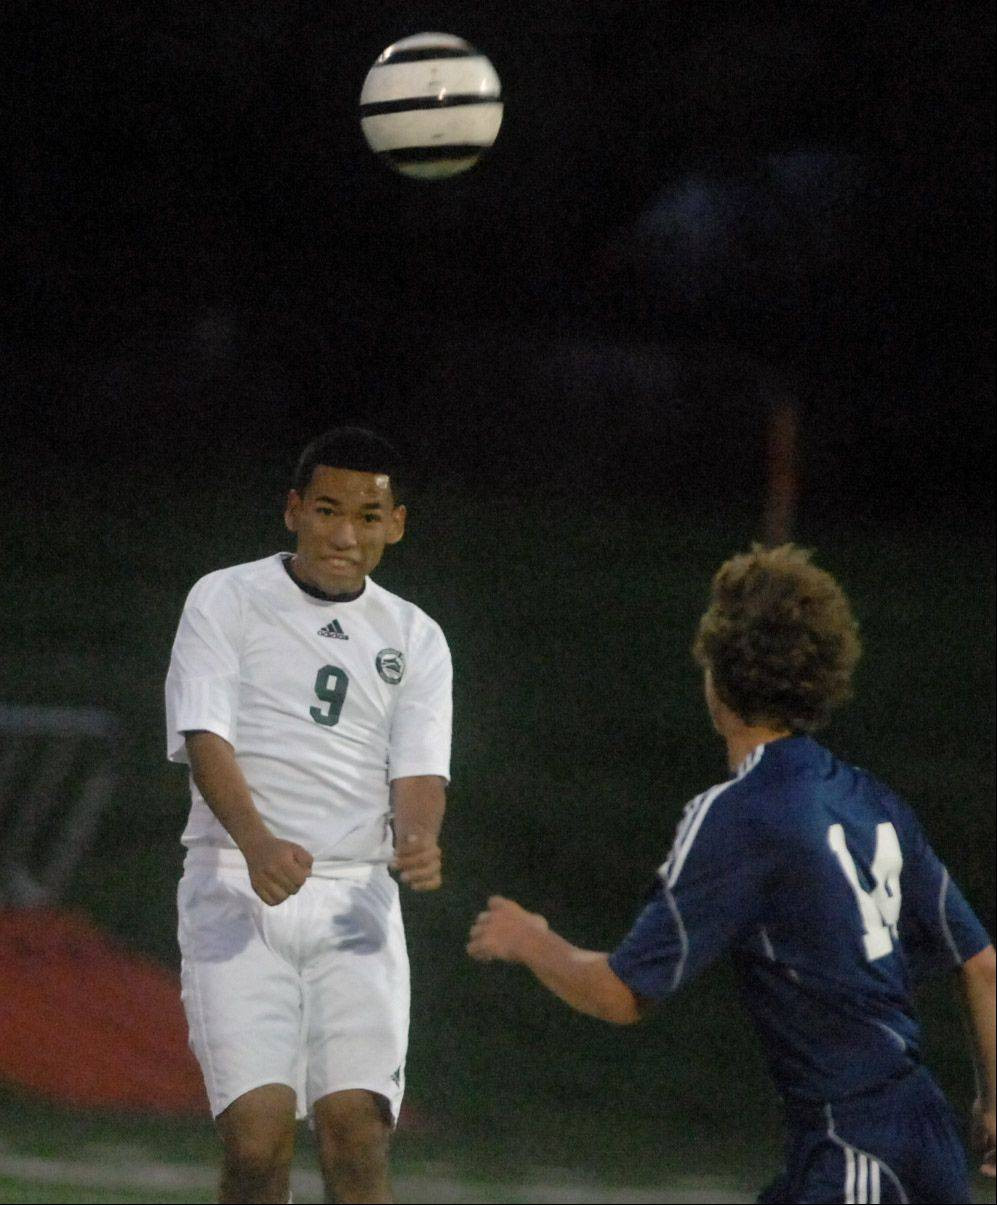 Shawn Herrera of Glenbard West heads the ball over Adam Jones of Bartlett during the Bartlett at Glenbard West boys soccer game Thursday.